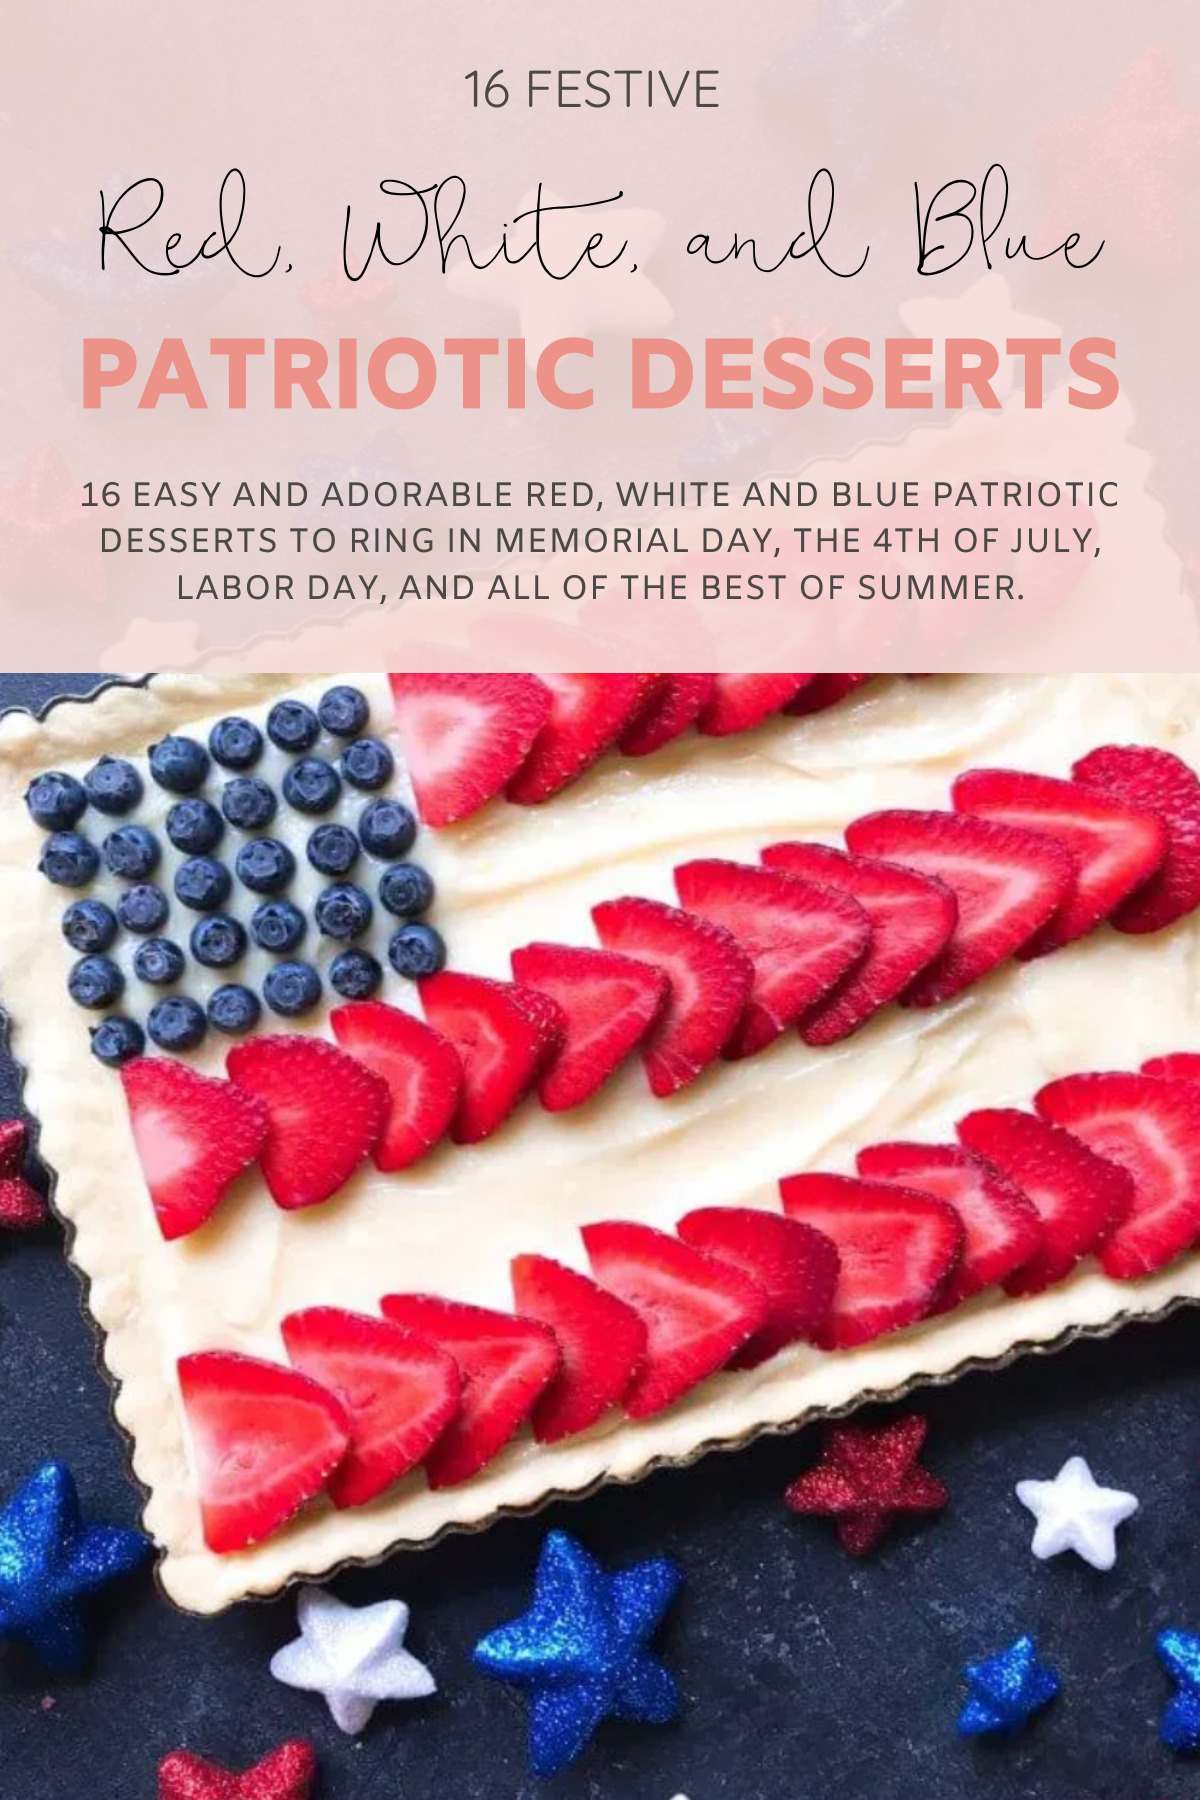 16 easy and adorable Red, White and Blue Patriotic Recipes ... the best festive food, treats, drinks, and more, to ring in Memorial Day, the 4th of July, and all of the best of summer. Red White and Blue Dessert Mini Fruit Pizzas | @glitterinclexi | GLITTERINC.COM